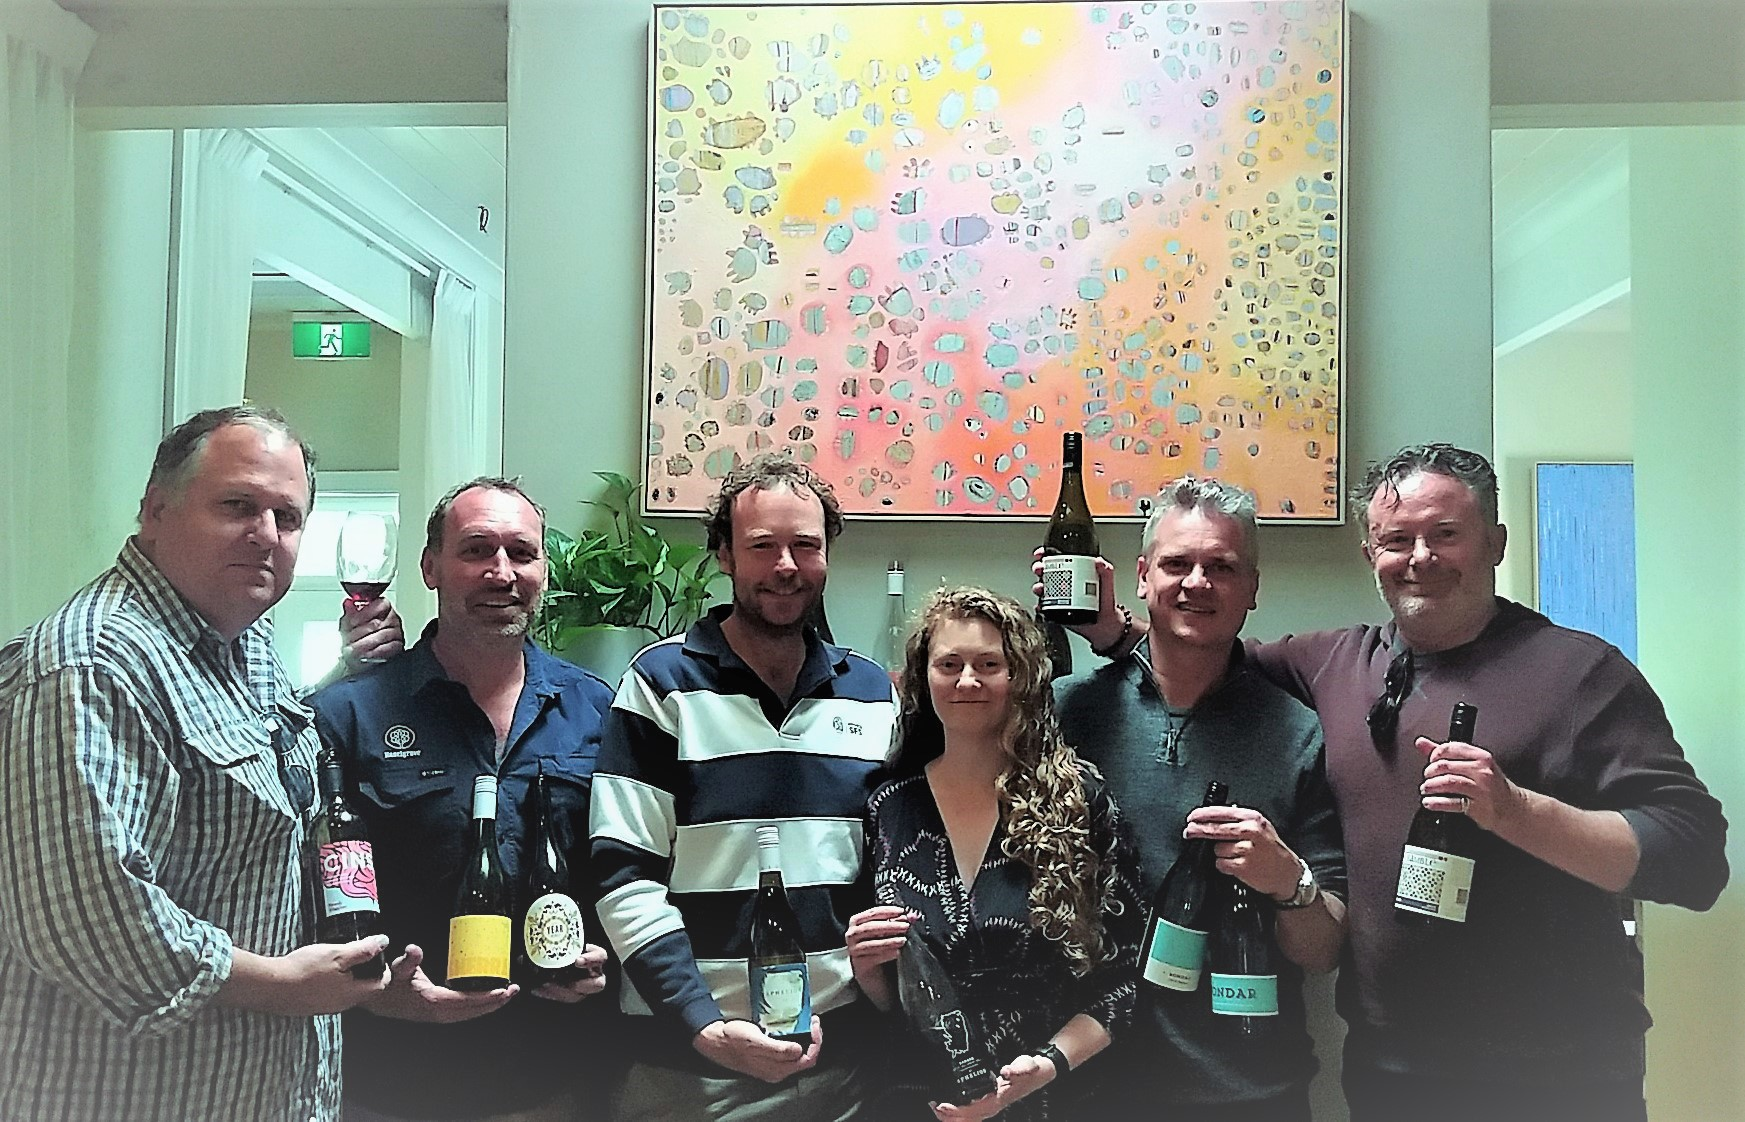 Widening the McLaren Vale gene pool, artisans Bard Hickey (Brash Higgins), Alex Sherrah (Sherrah Wines), Rob & Louise Mack (Aphelion Wines), Andre Bondar (Bondar Wines) & Andy Coppard (Lino Ramble)